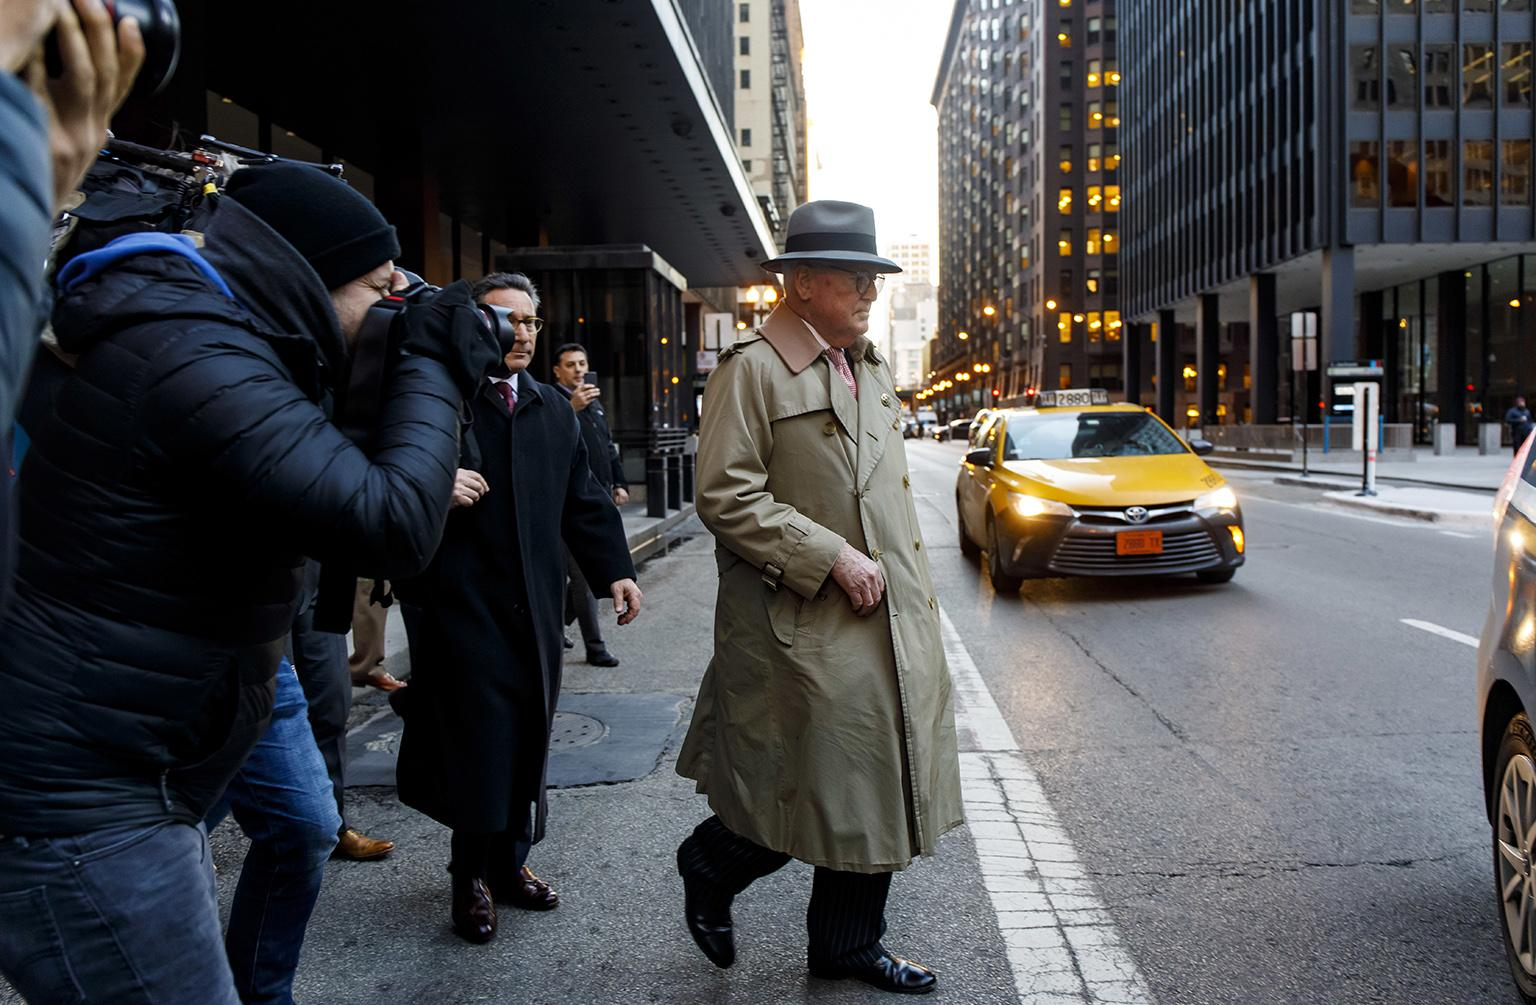 Ald. Ed Burke, 75, walks out of the Dirksen Federal Courthouse following his release after turning himself in on Thursday, Jan. 3, 2019. (Brian Cassella / Chicago Tribune via AP)